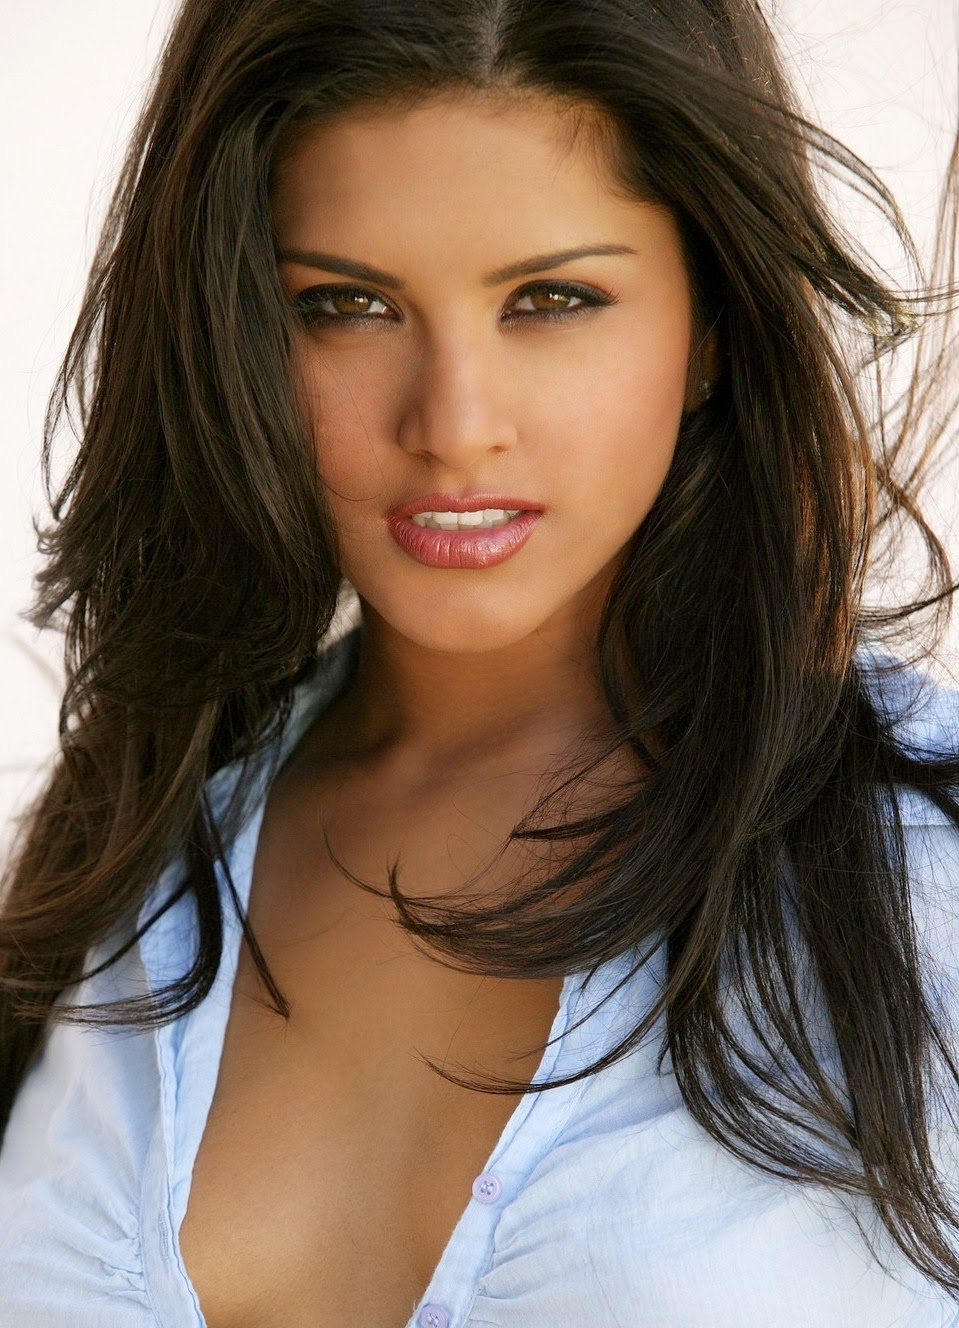 sunny leone hot hd nice wallpapers group images